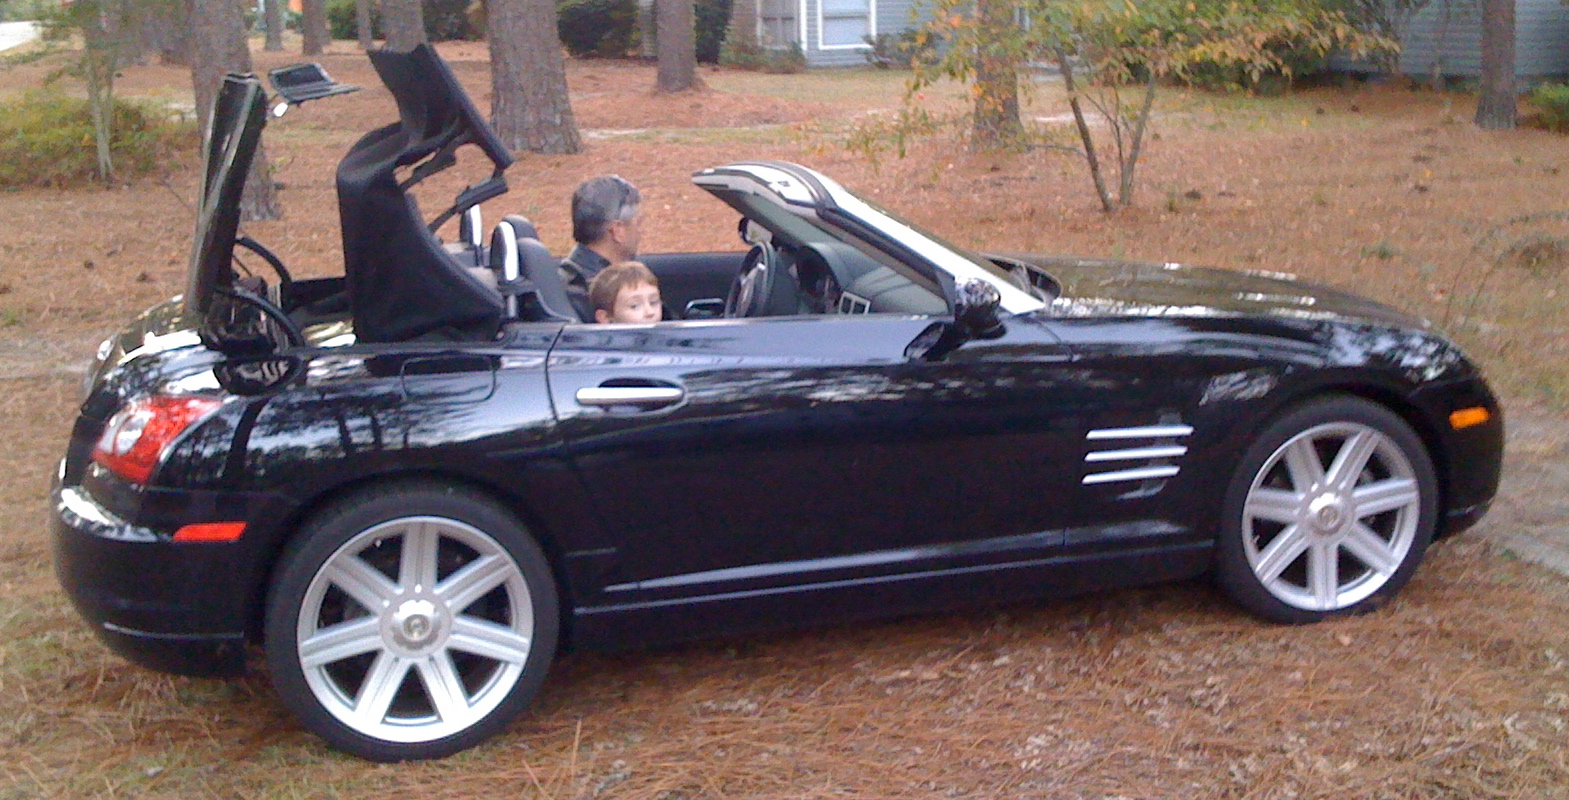 file chrysler crossfire convertible black wikimedia commons. Black Bedroom Furniture Sets. Home Design Ideas